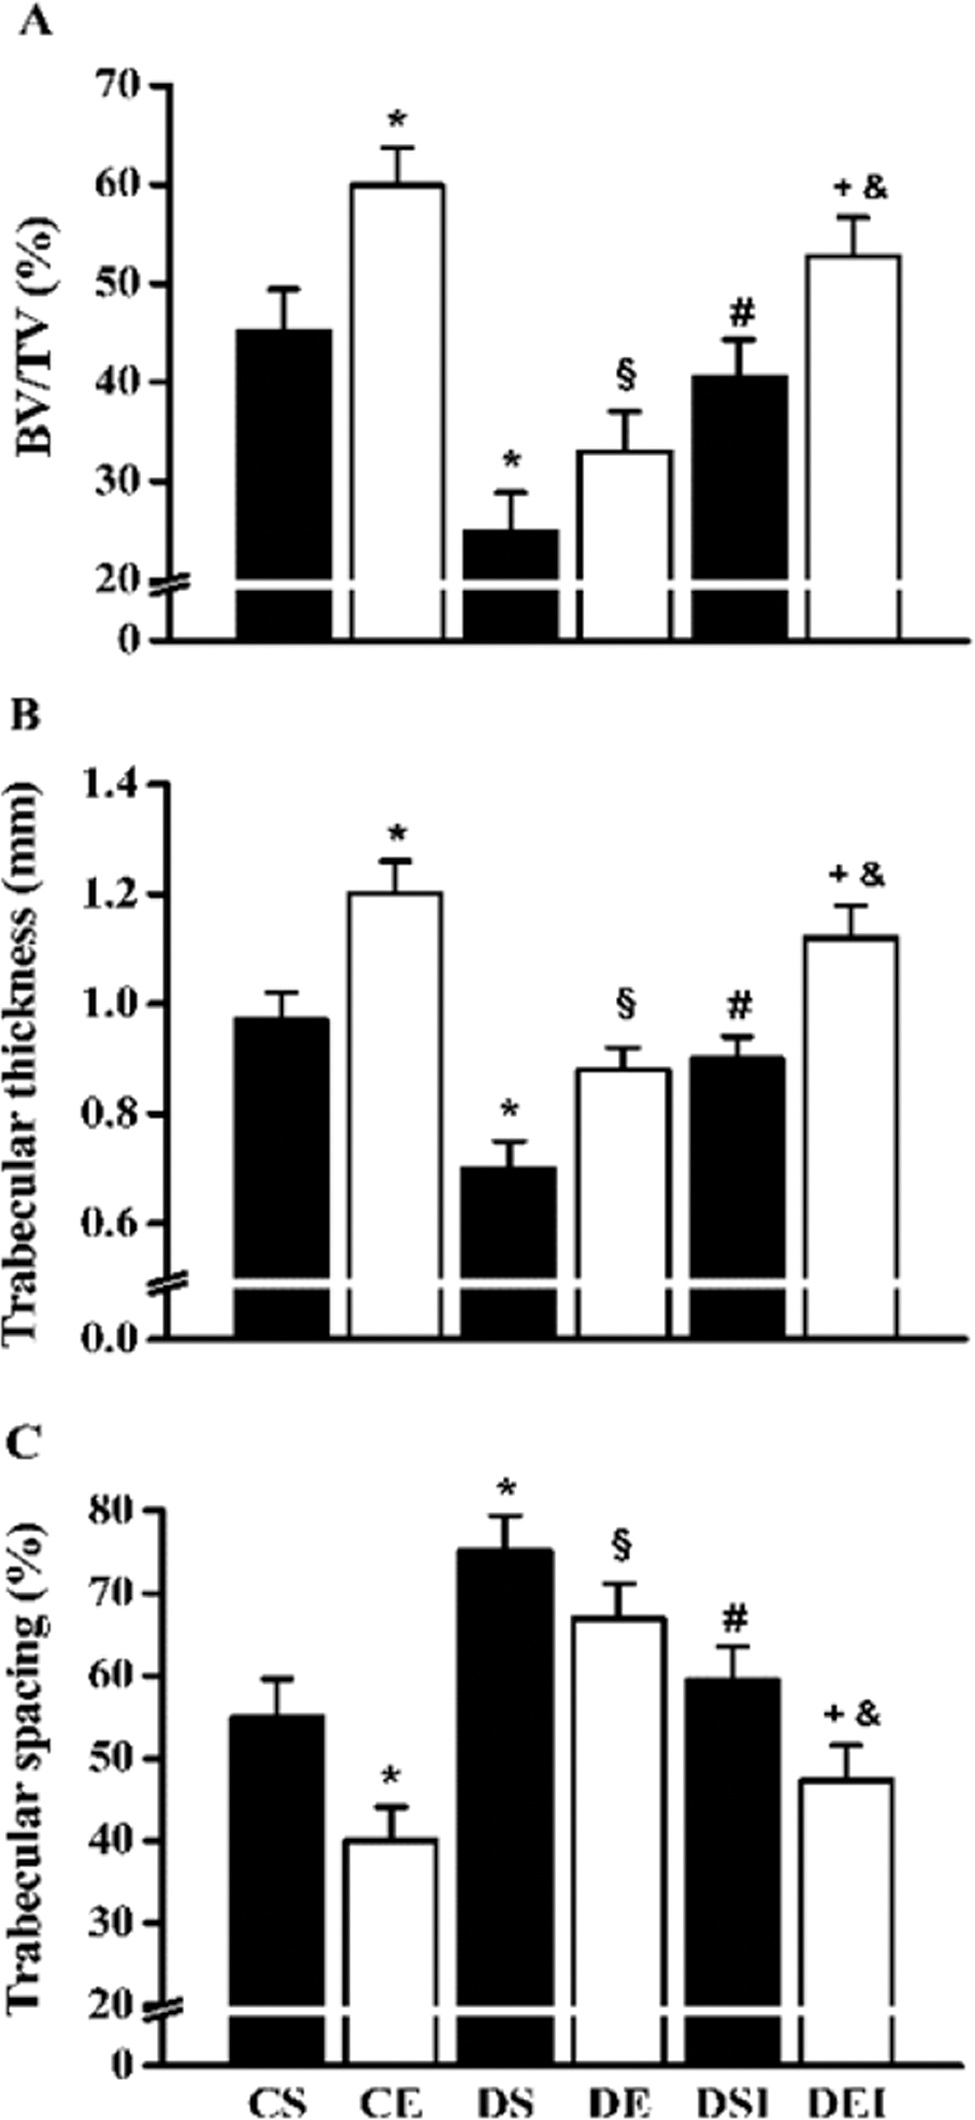 Femoral neck trabecular bone volume (BV/TV) (A), trabecular thickness (B) and trabecular spacing (C). Data are expressed as the means ± SEMs of 5 images per rat of the 10 rats in each group. CS: control sedentary; CE: control exercise; DS: diabetic sedentary; DE: diabetic exercise; DSI: diabetic sedentary plus insulin; DEI: diabetic exercise plus insulin. *§#+&Significant difference between groups, p<0.05; *vs. CS, §vs. CE, #vs. DS, +vs. DE, &vs. DSI.